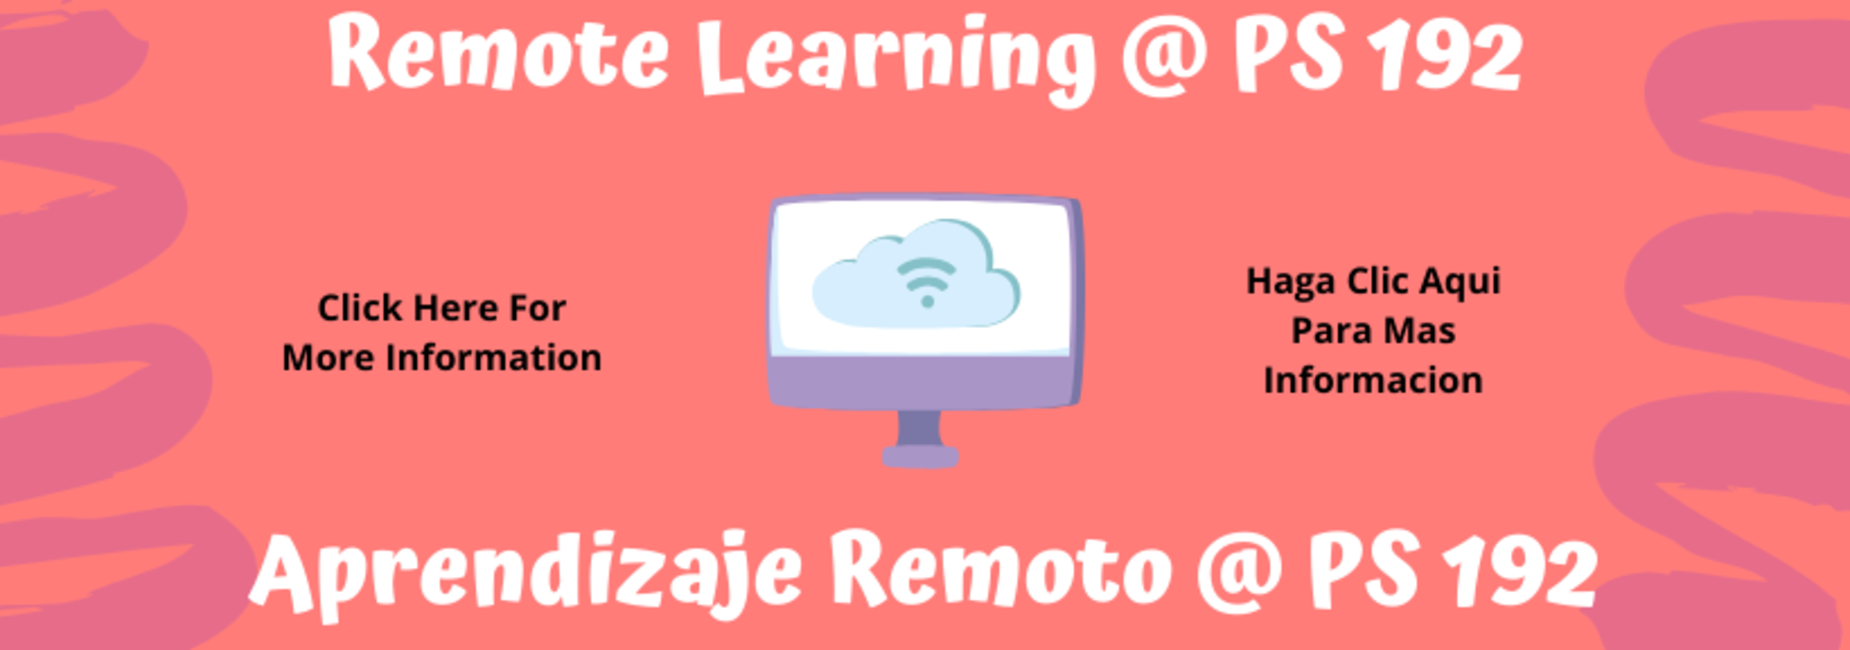 Remote Learning Banner English/Spanish